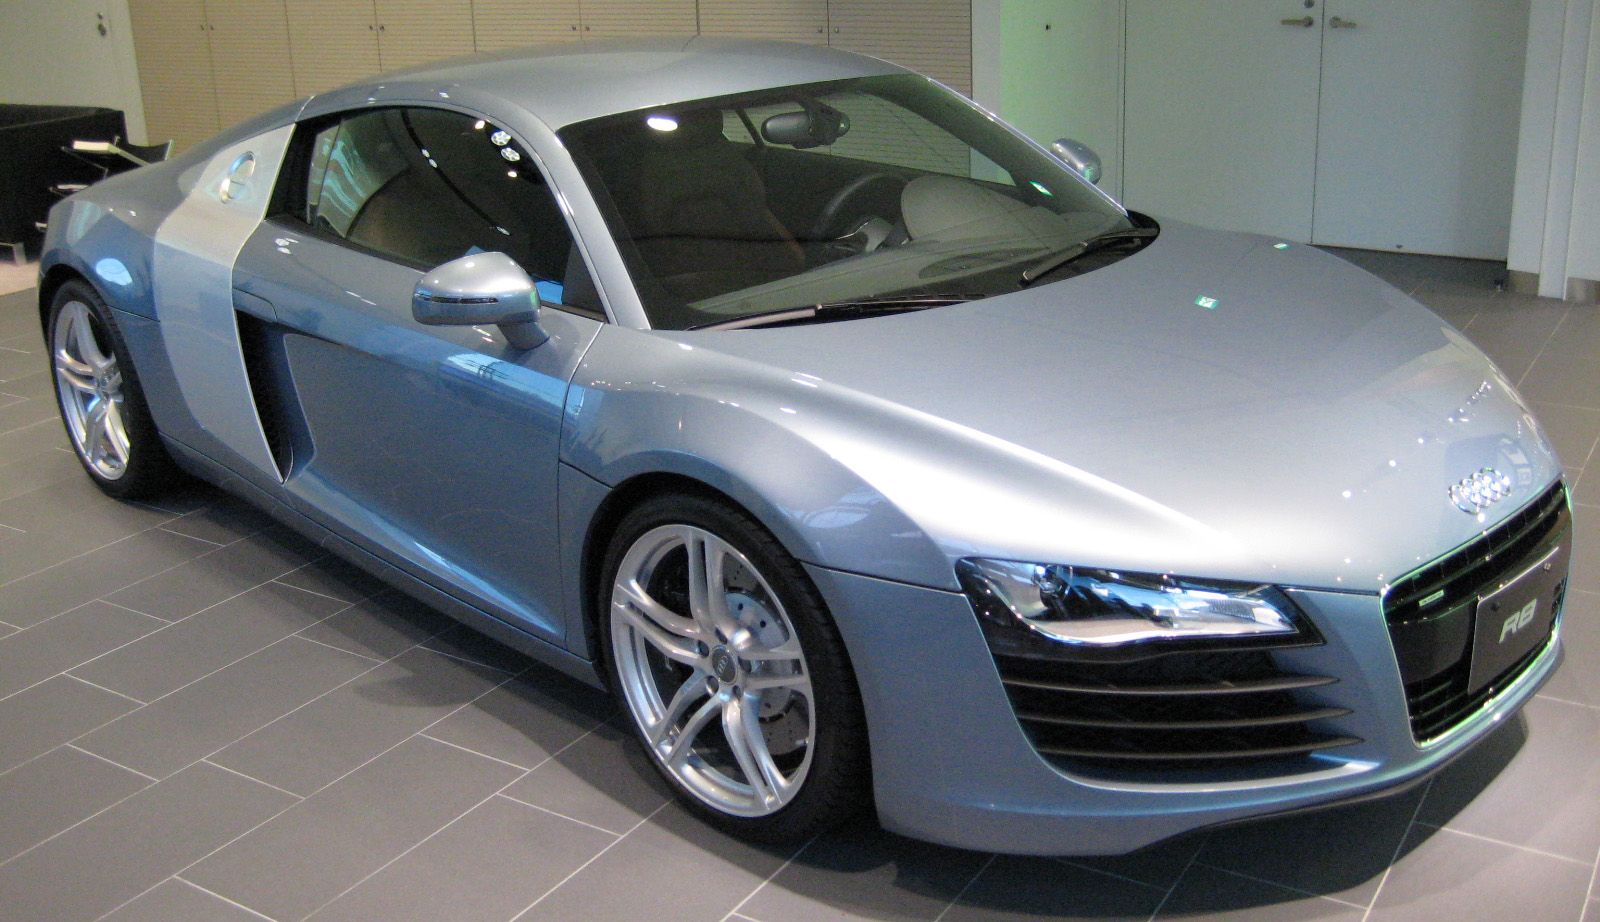 File2007 Audi R8 01JPG  Wikimedia Commons